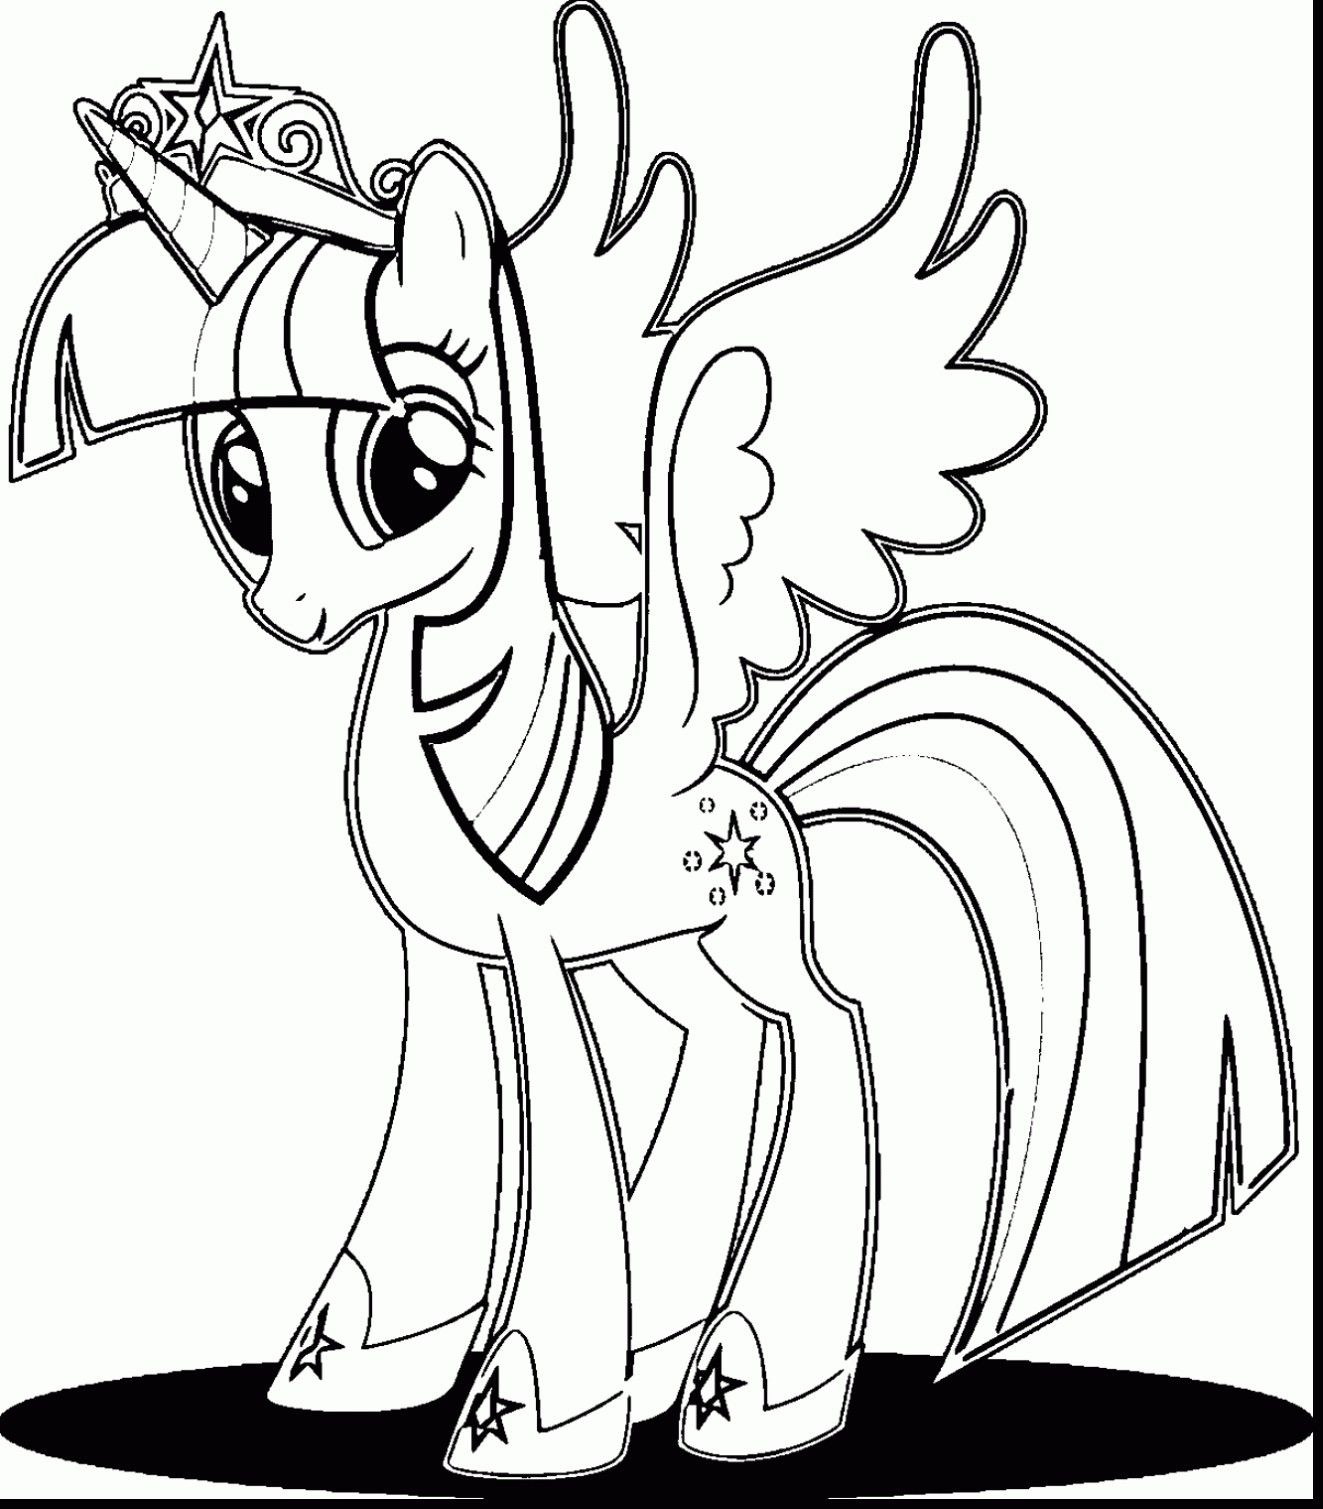 Coloring Pages Of Princess Twilight Sparkle Through The Thousands Of Photographs On My Little Pony Coloring Cartoon Coloring Pages Princess Twilight Sparkle